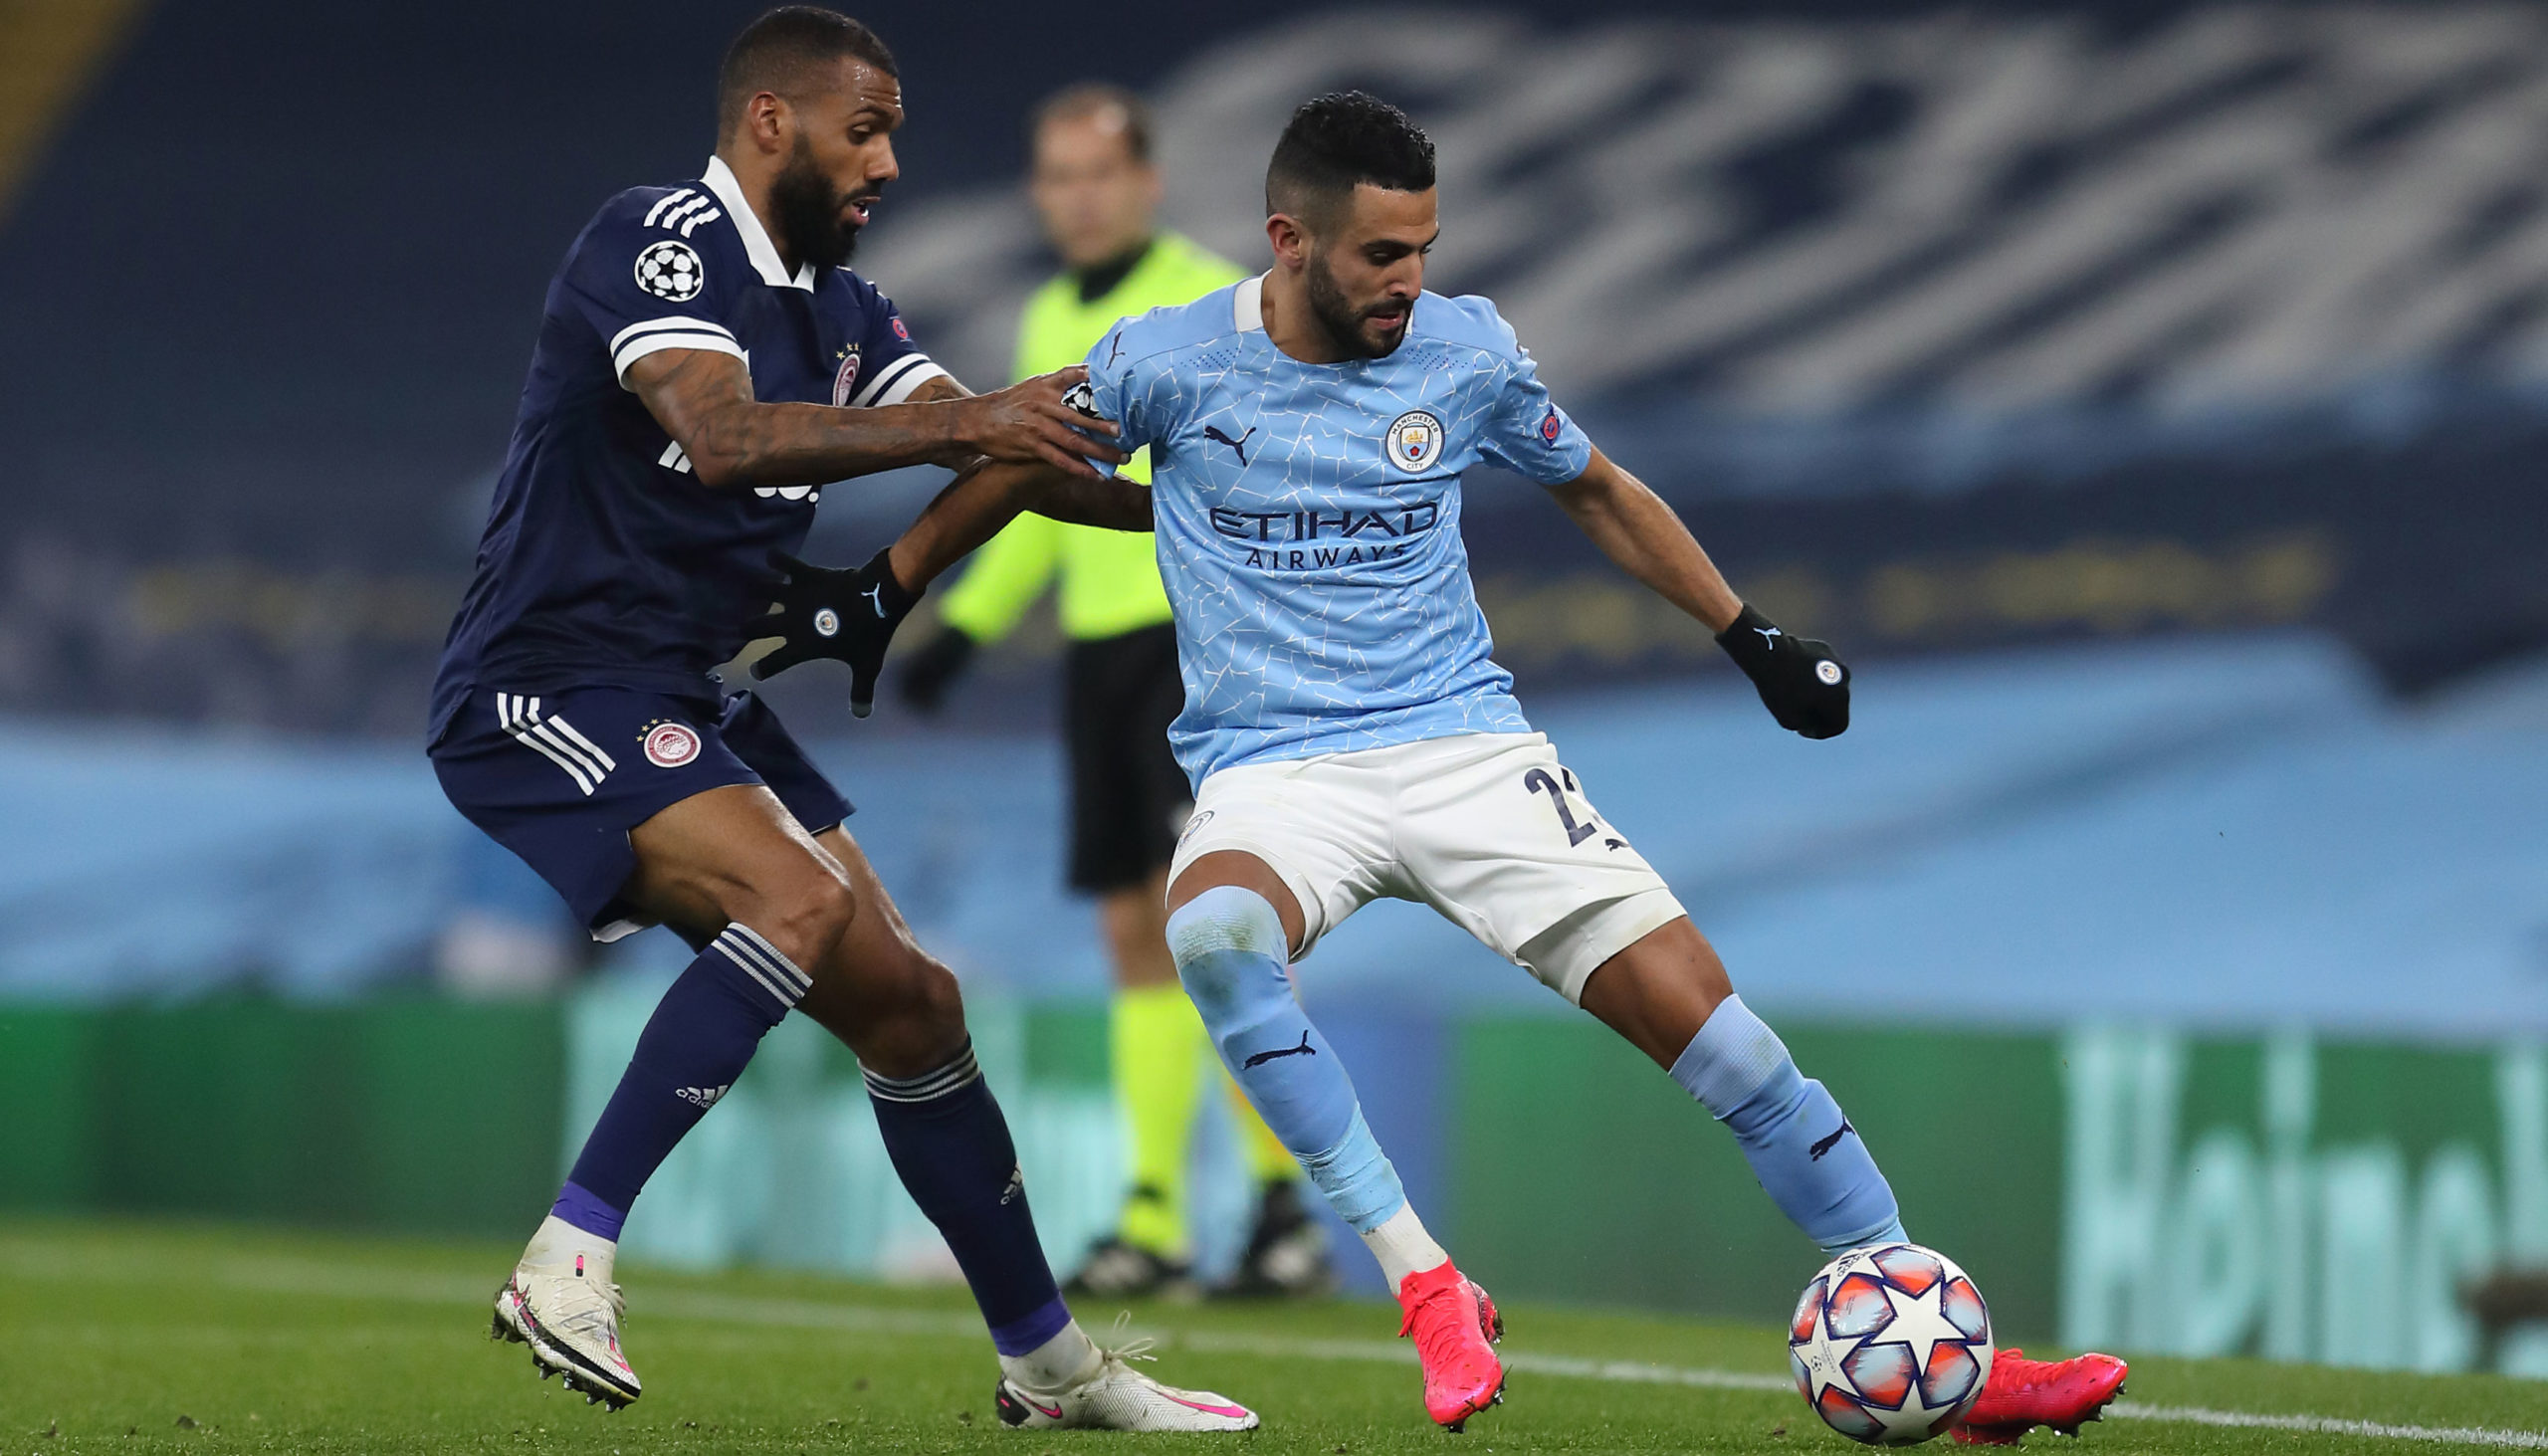 Olympiacos vs Man City: Greek relief for City